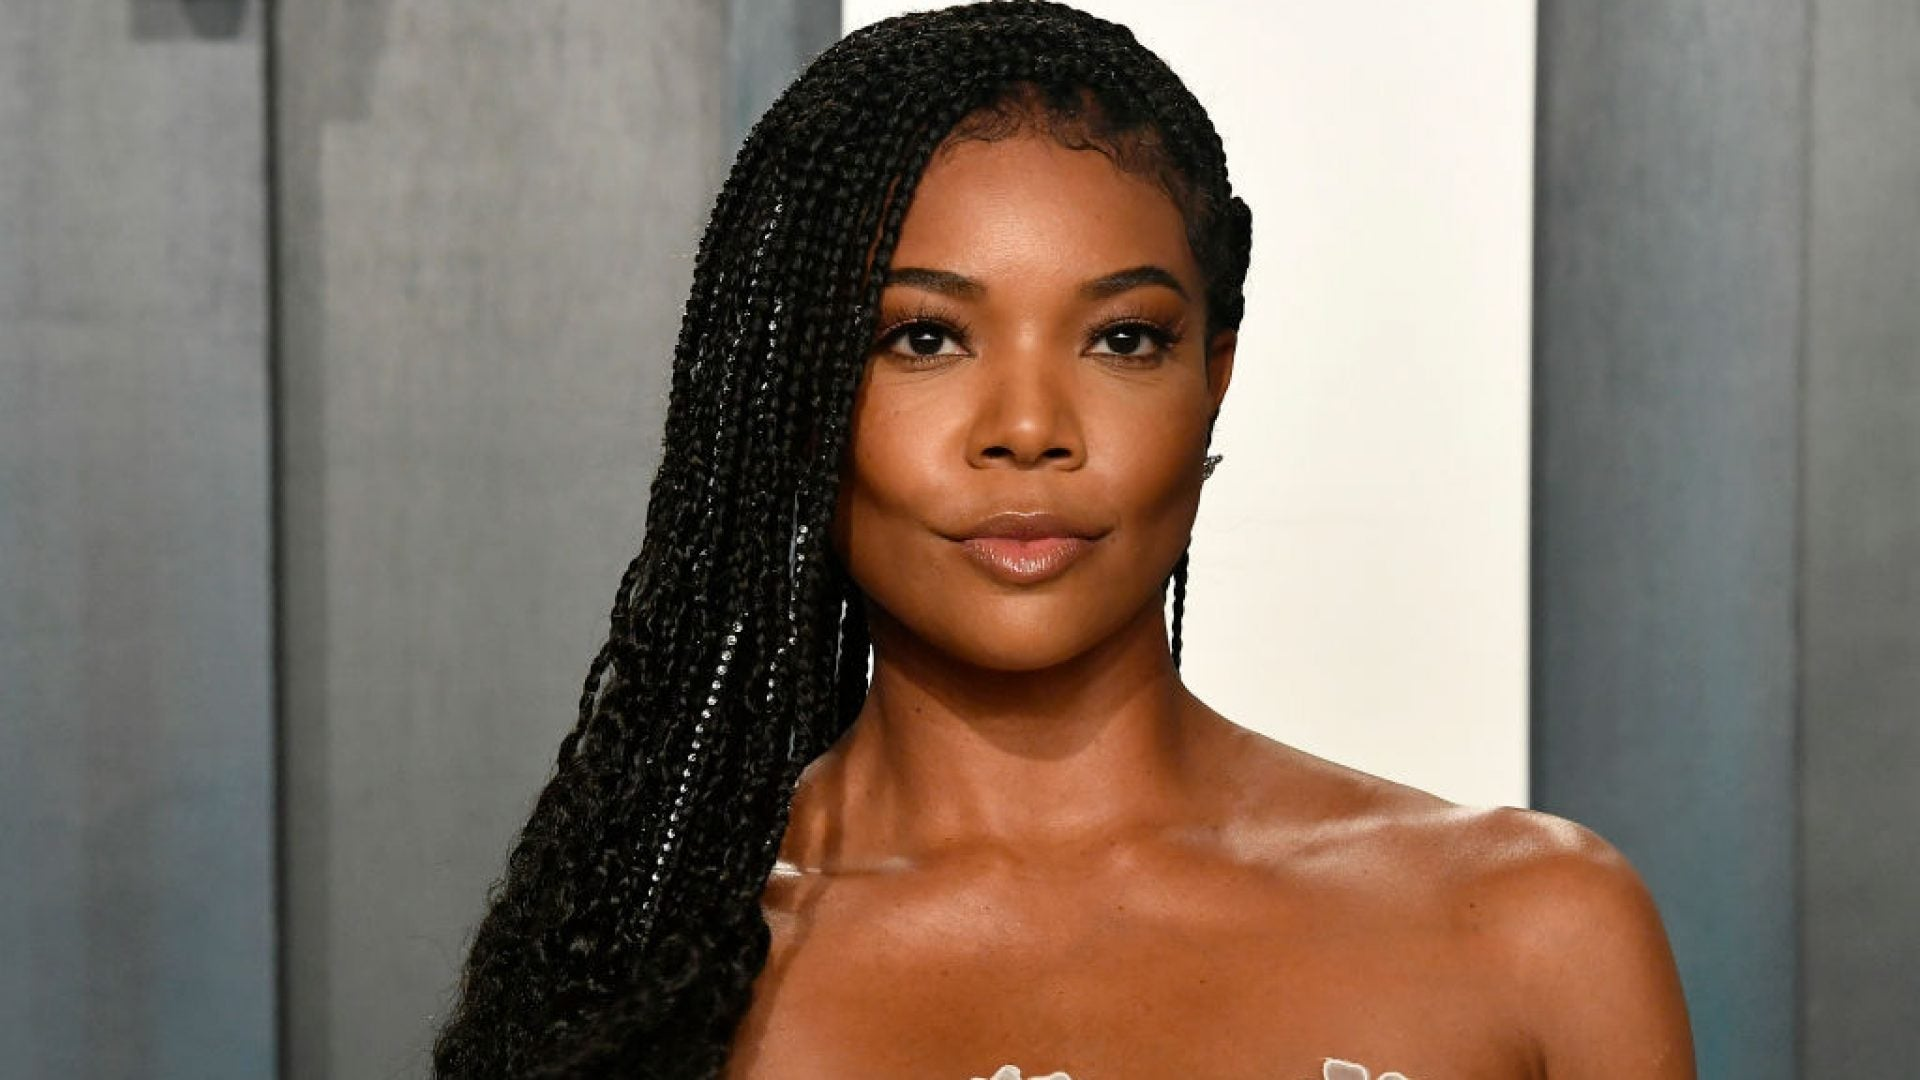 Gabrielle Union Accuses NBC Entertainment Chairman Of 'Racial Bullying' In Discrimination Complaint